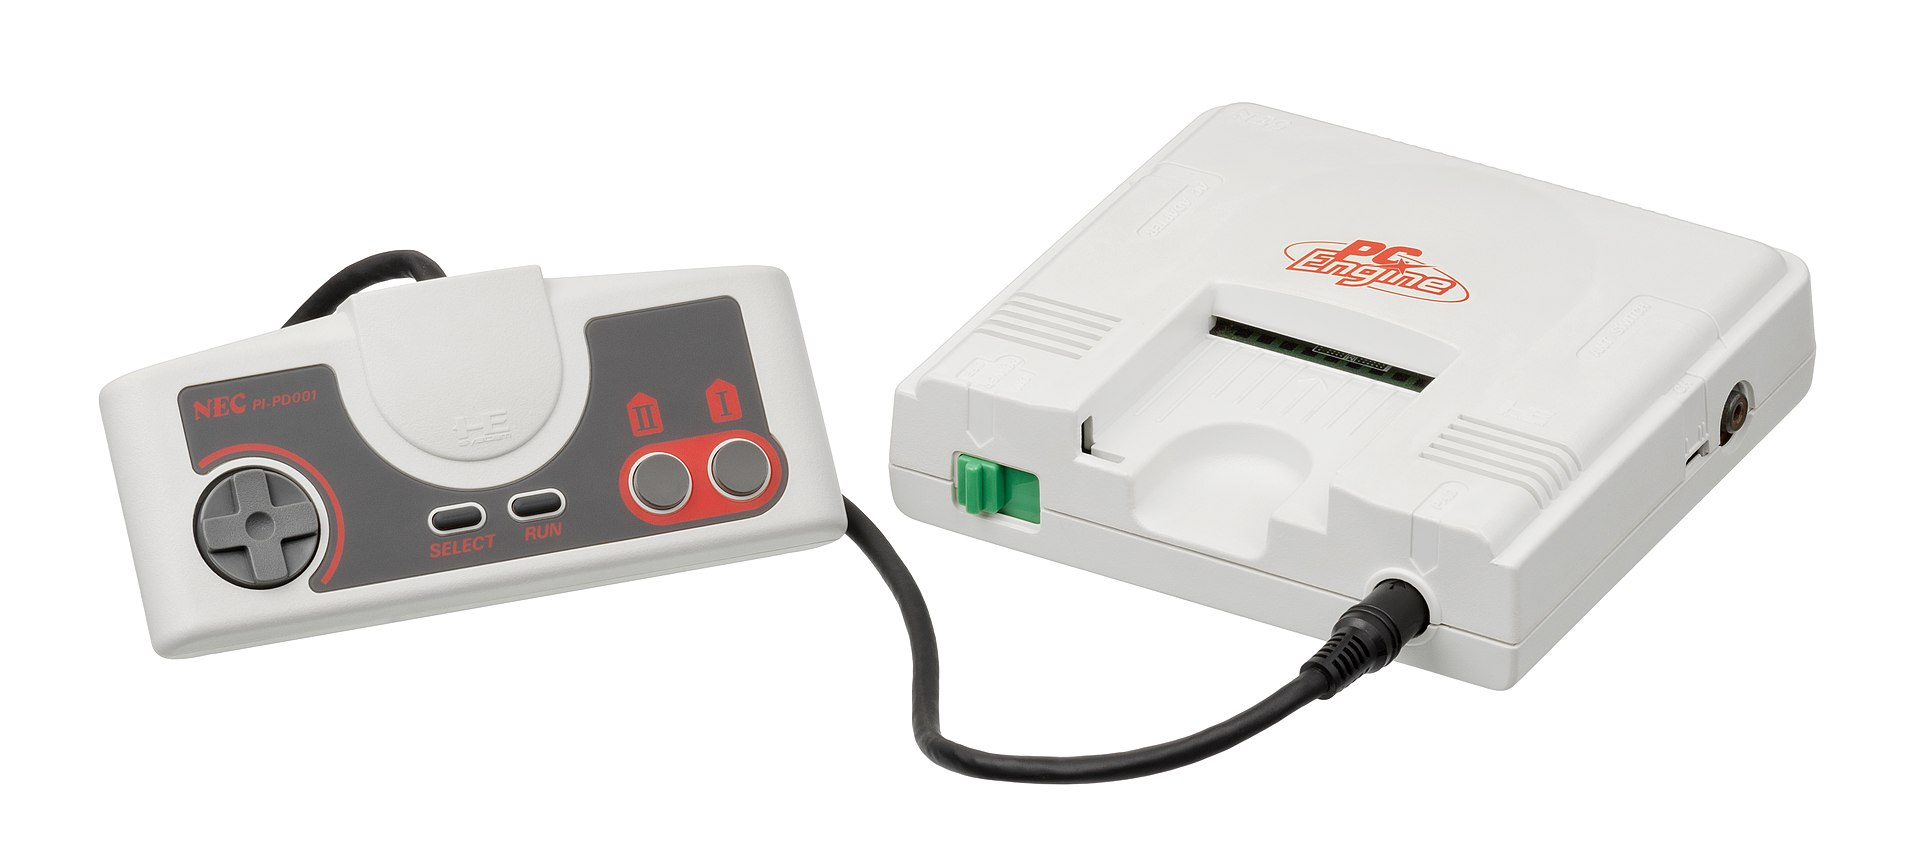 The NEC PC Engine, also known as the Turbo Grafix 16. Jamie is a big fan.